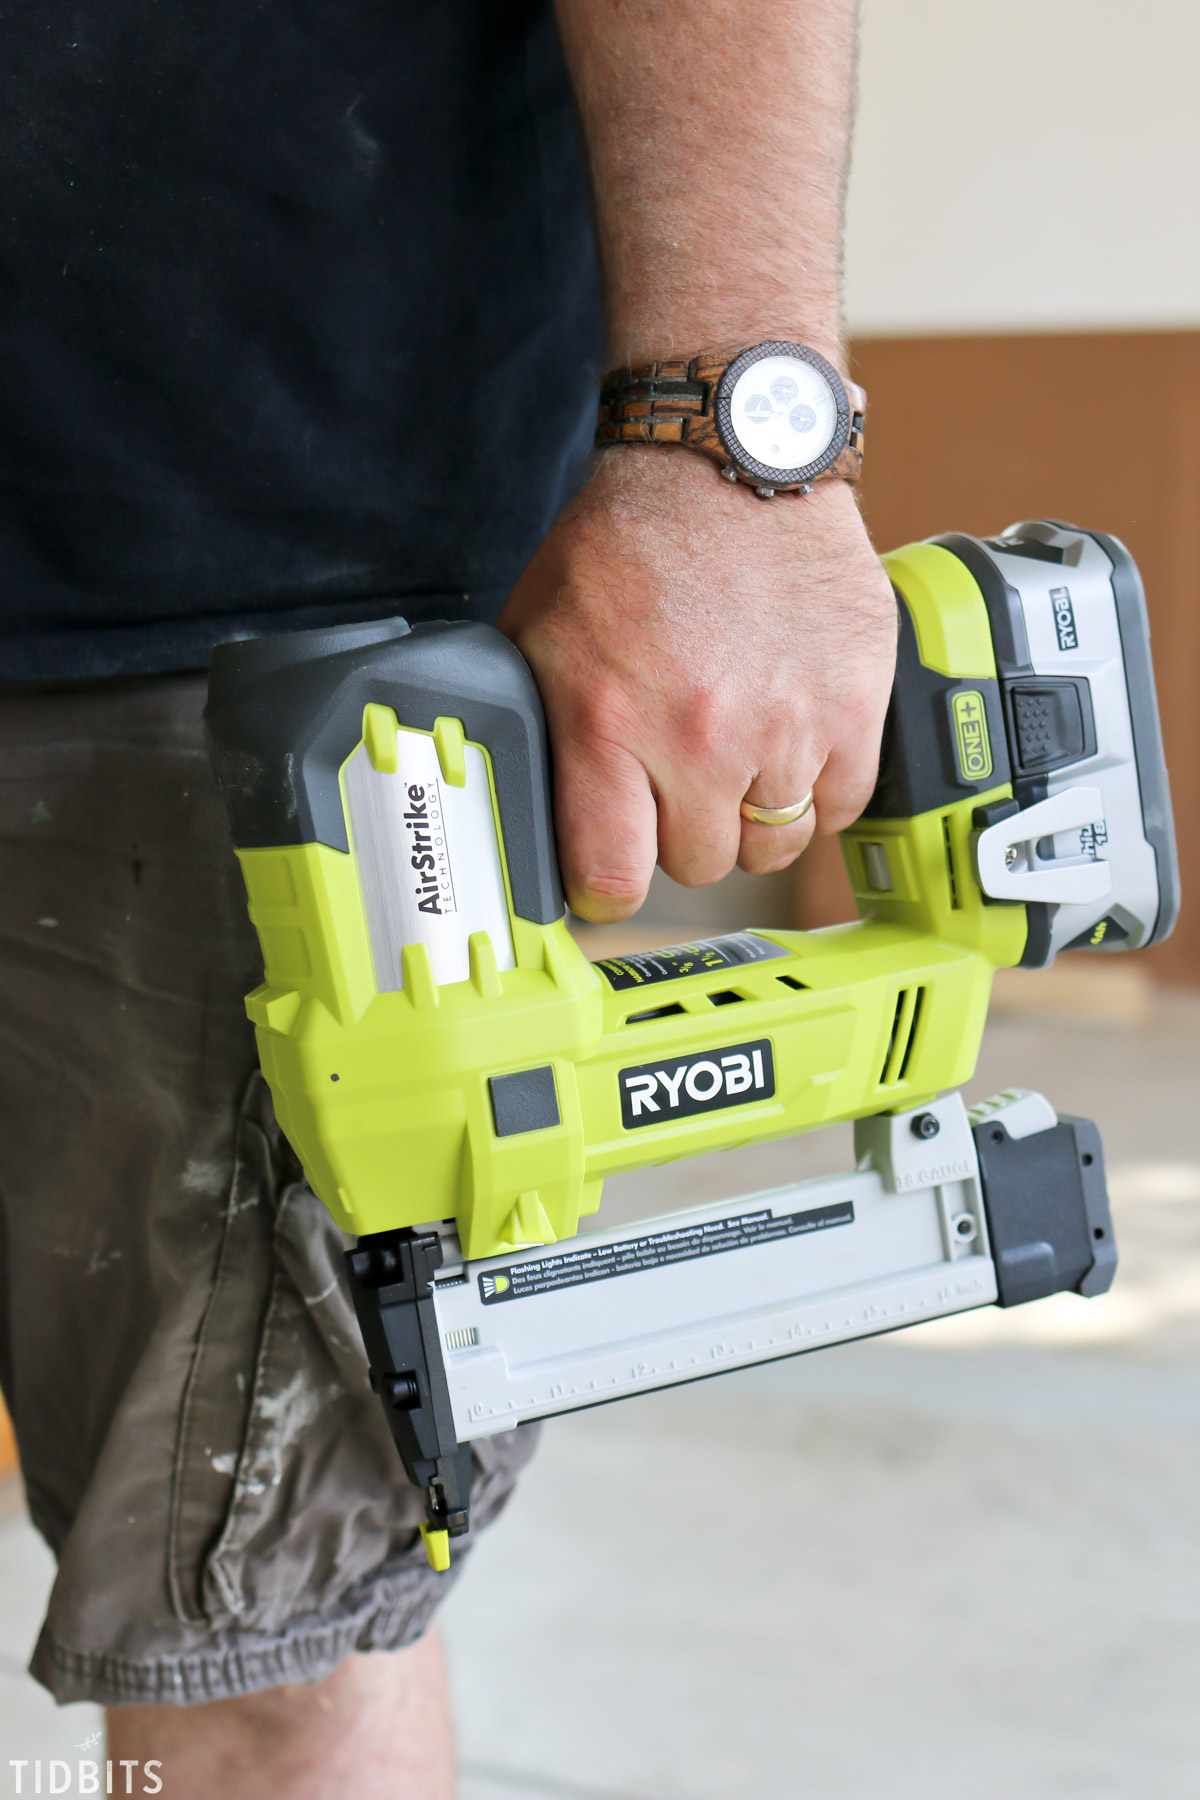 Ryobi Power Tool held by man